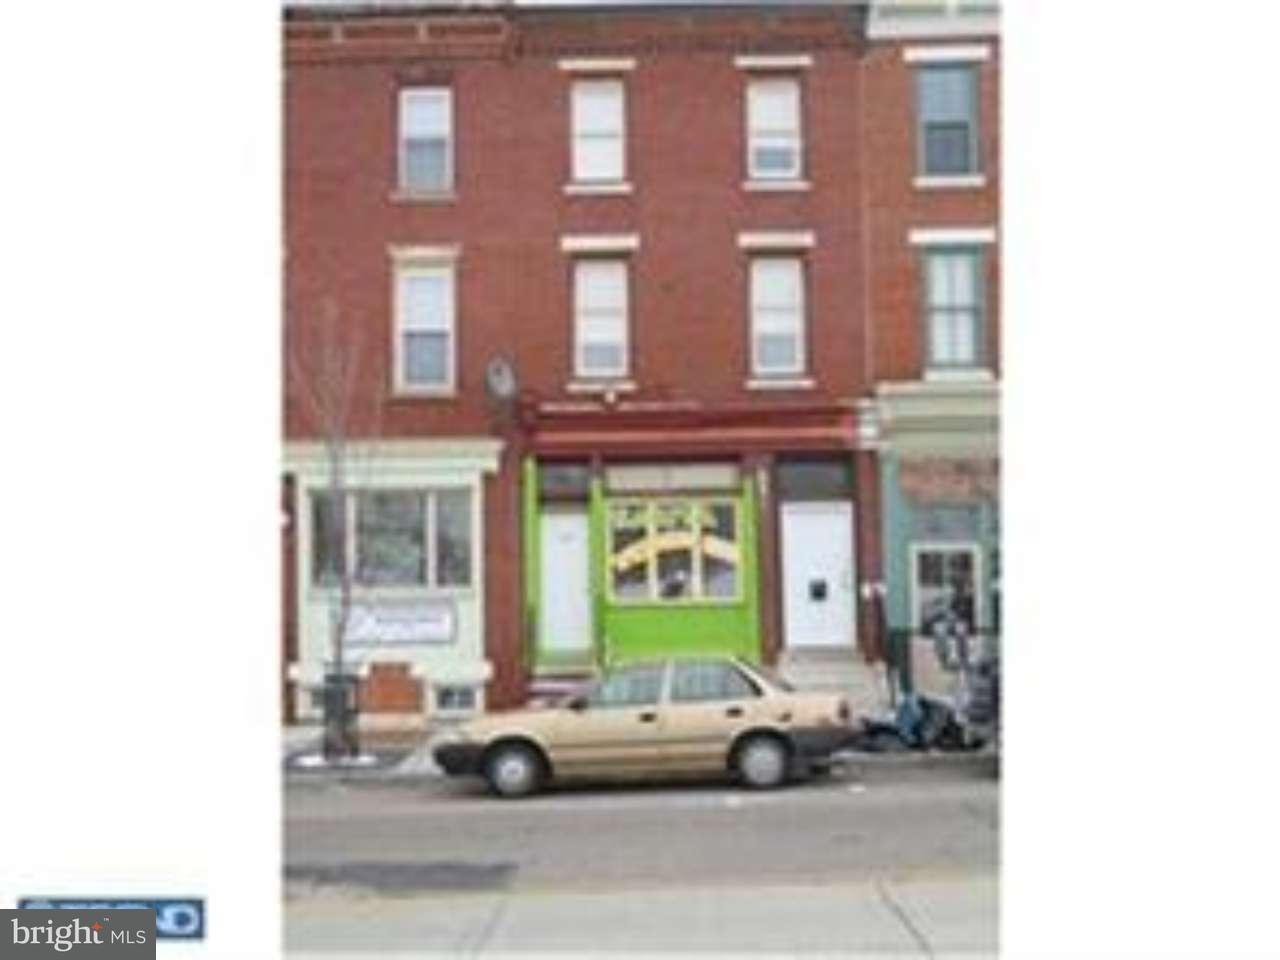 Triplex for Sale at 444 S BROADWAY Camden, New Jersey 08103 United States